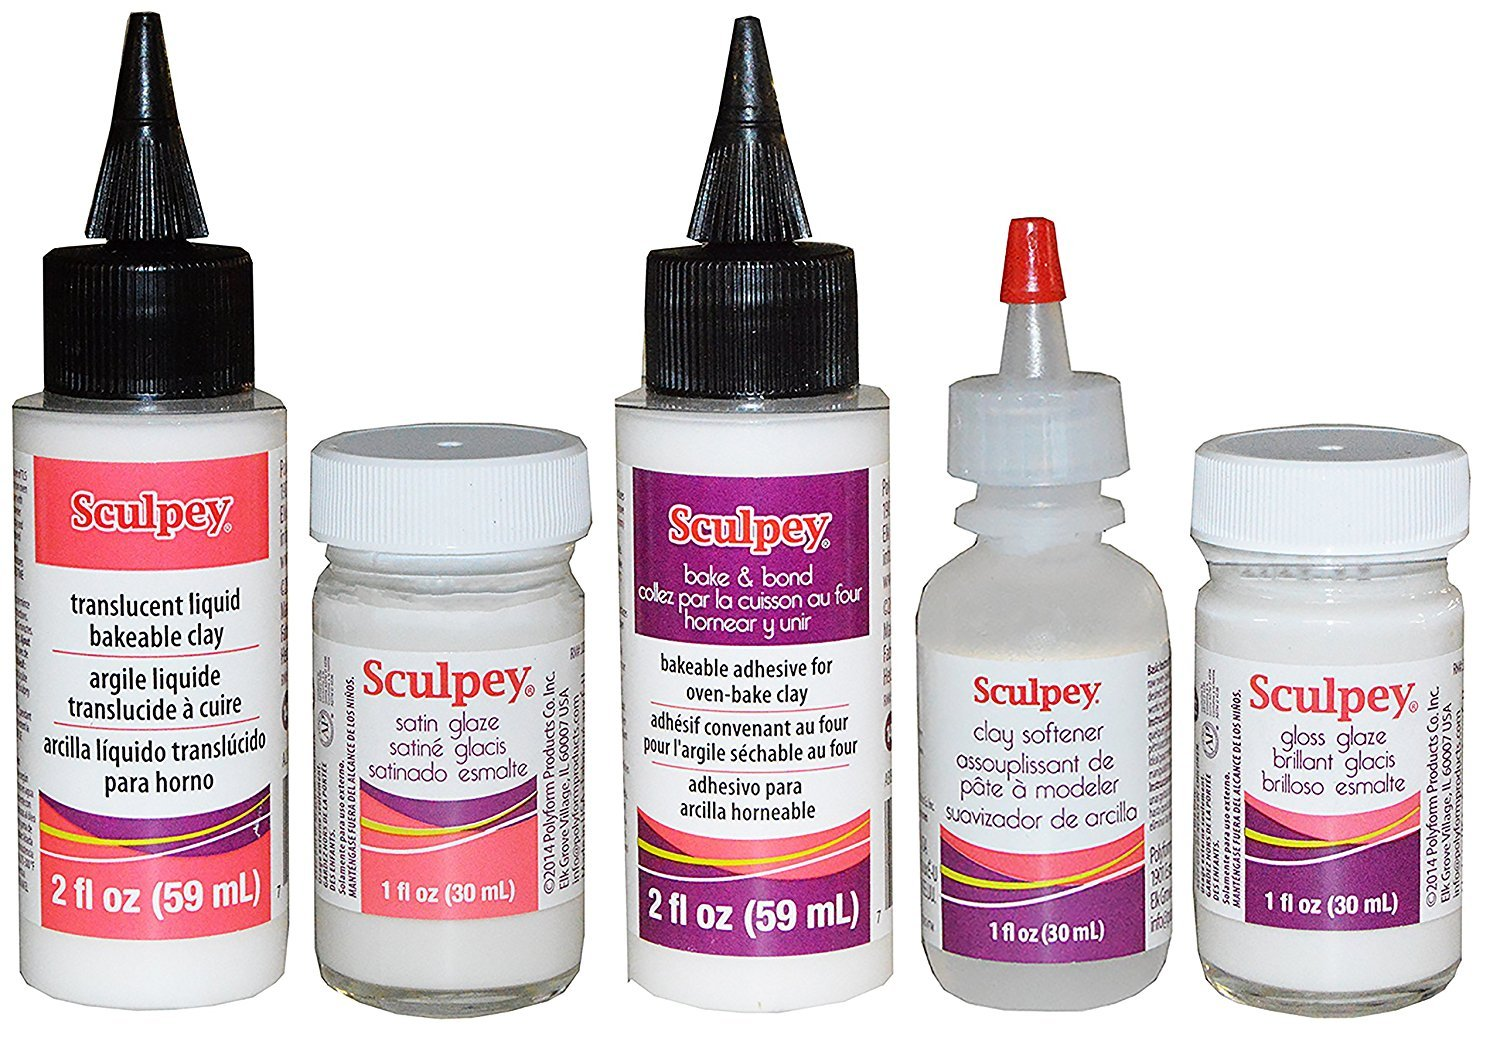 Sculpey Artist Set: 2-Ounce Translucent Liquid Bakeable Clay, 1-Ounce Satin Glaze, 2-Ounce Bake & Bond, 1-Ounce Clay Softener, 1-Ounce Gloss Glaze